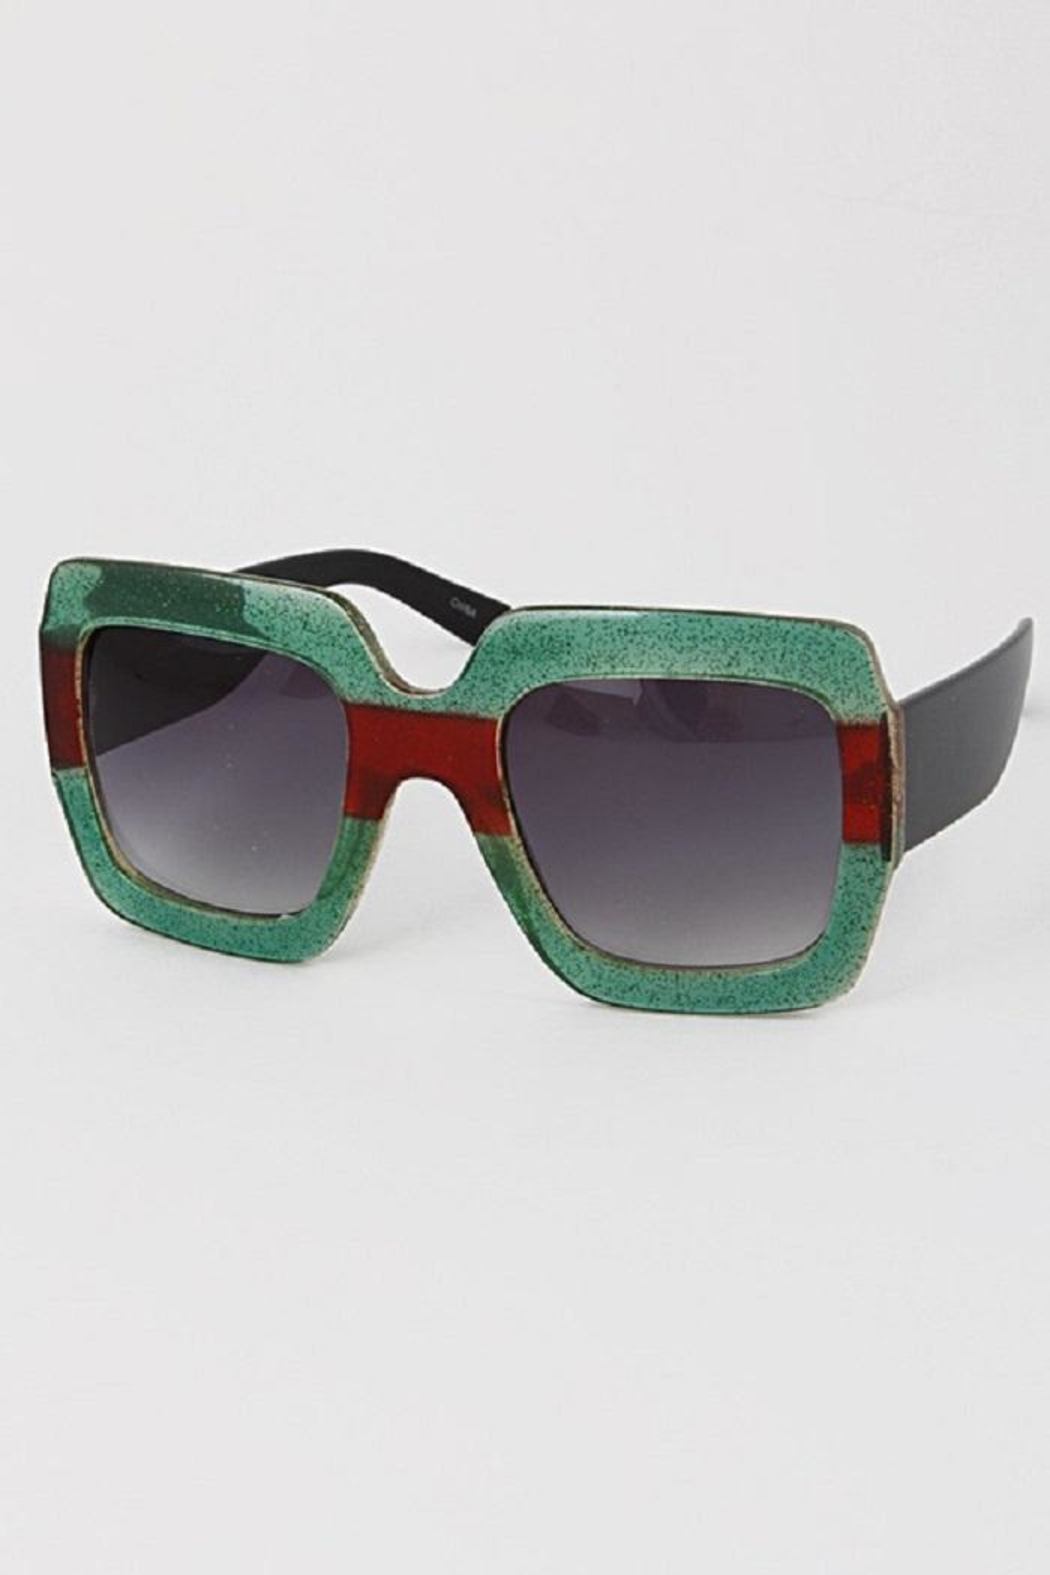 ecc3a1a65b7d8 HD Gucci Inspired Shades from Missouri by Domi More — Shoptiques